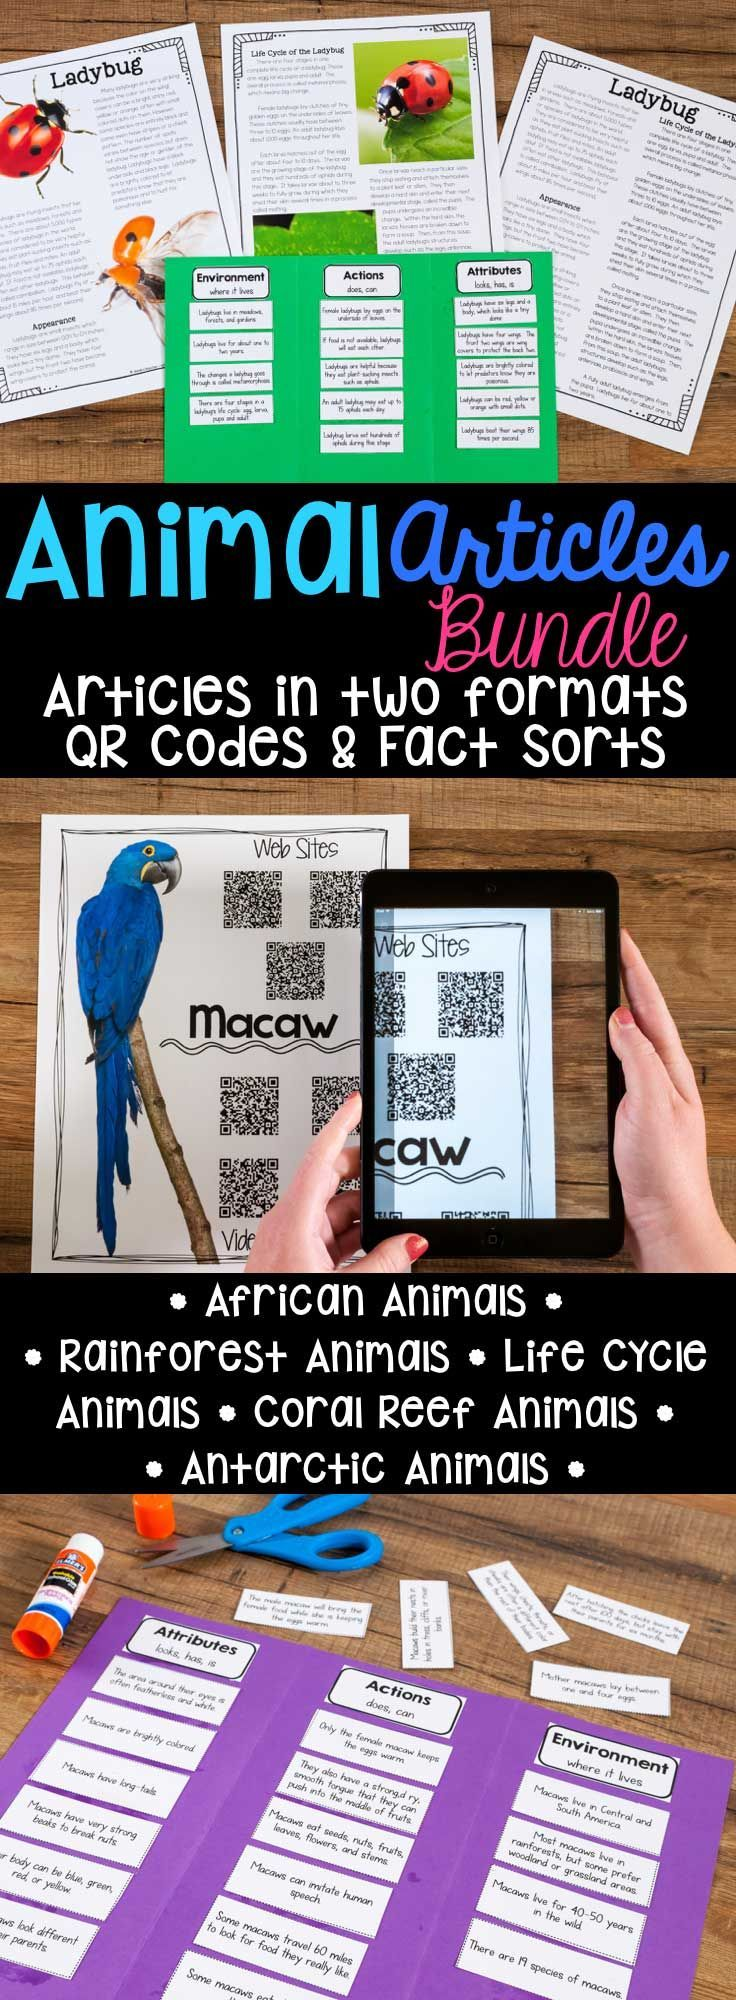 Animal Articles: Informational Article, QR Code Research Page & Fact Sort is a bundle of informational articles all about Animals. These articles are full of interesting facts and details that students can use during reading and writing activities. Includes an article about each animal in two formats (two-page color photos & one-page text), QR Codes for online articles and videos about the animal and a fact sort sheet where students can sort facts about each animal's attributes.